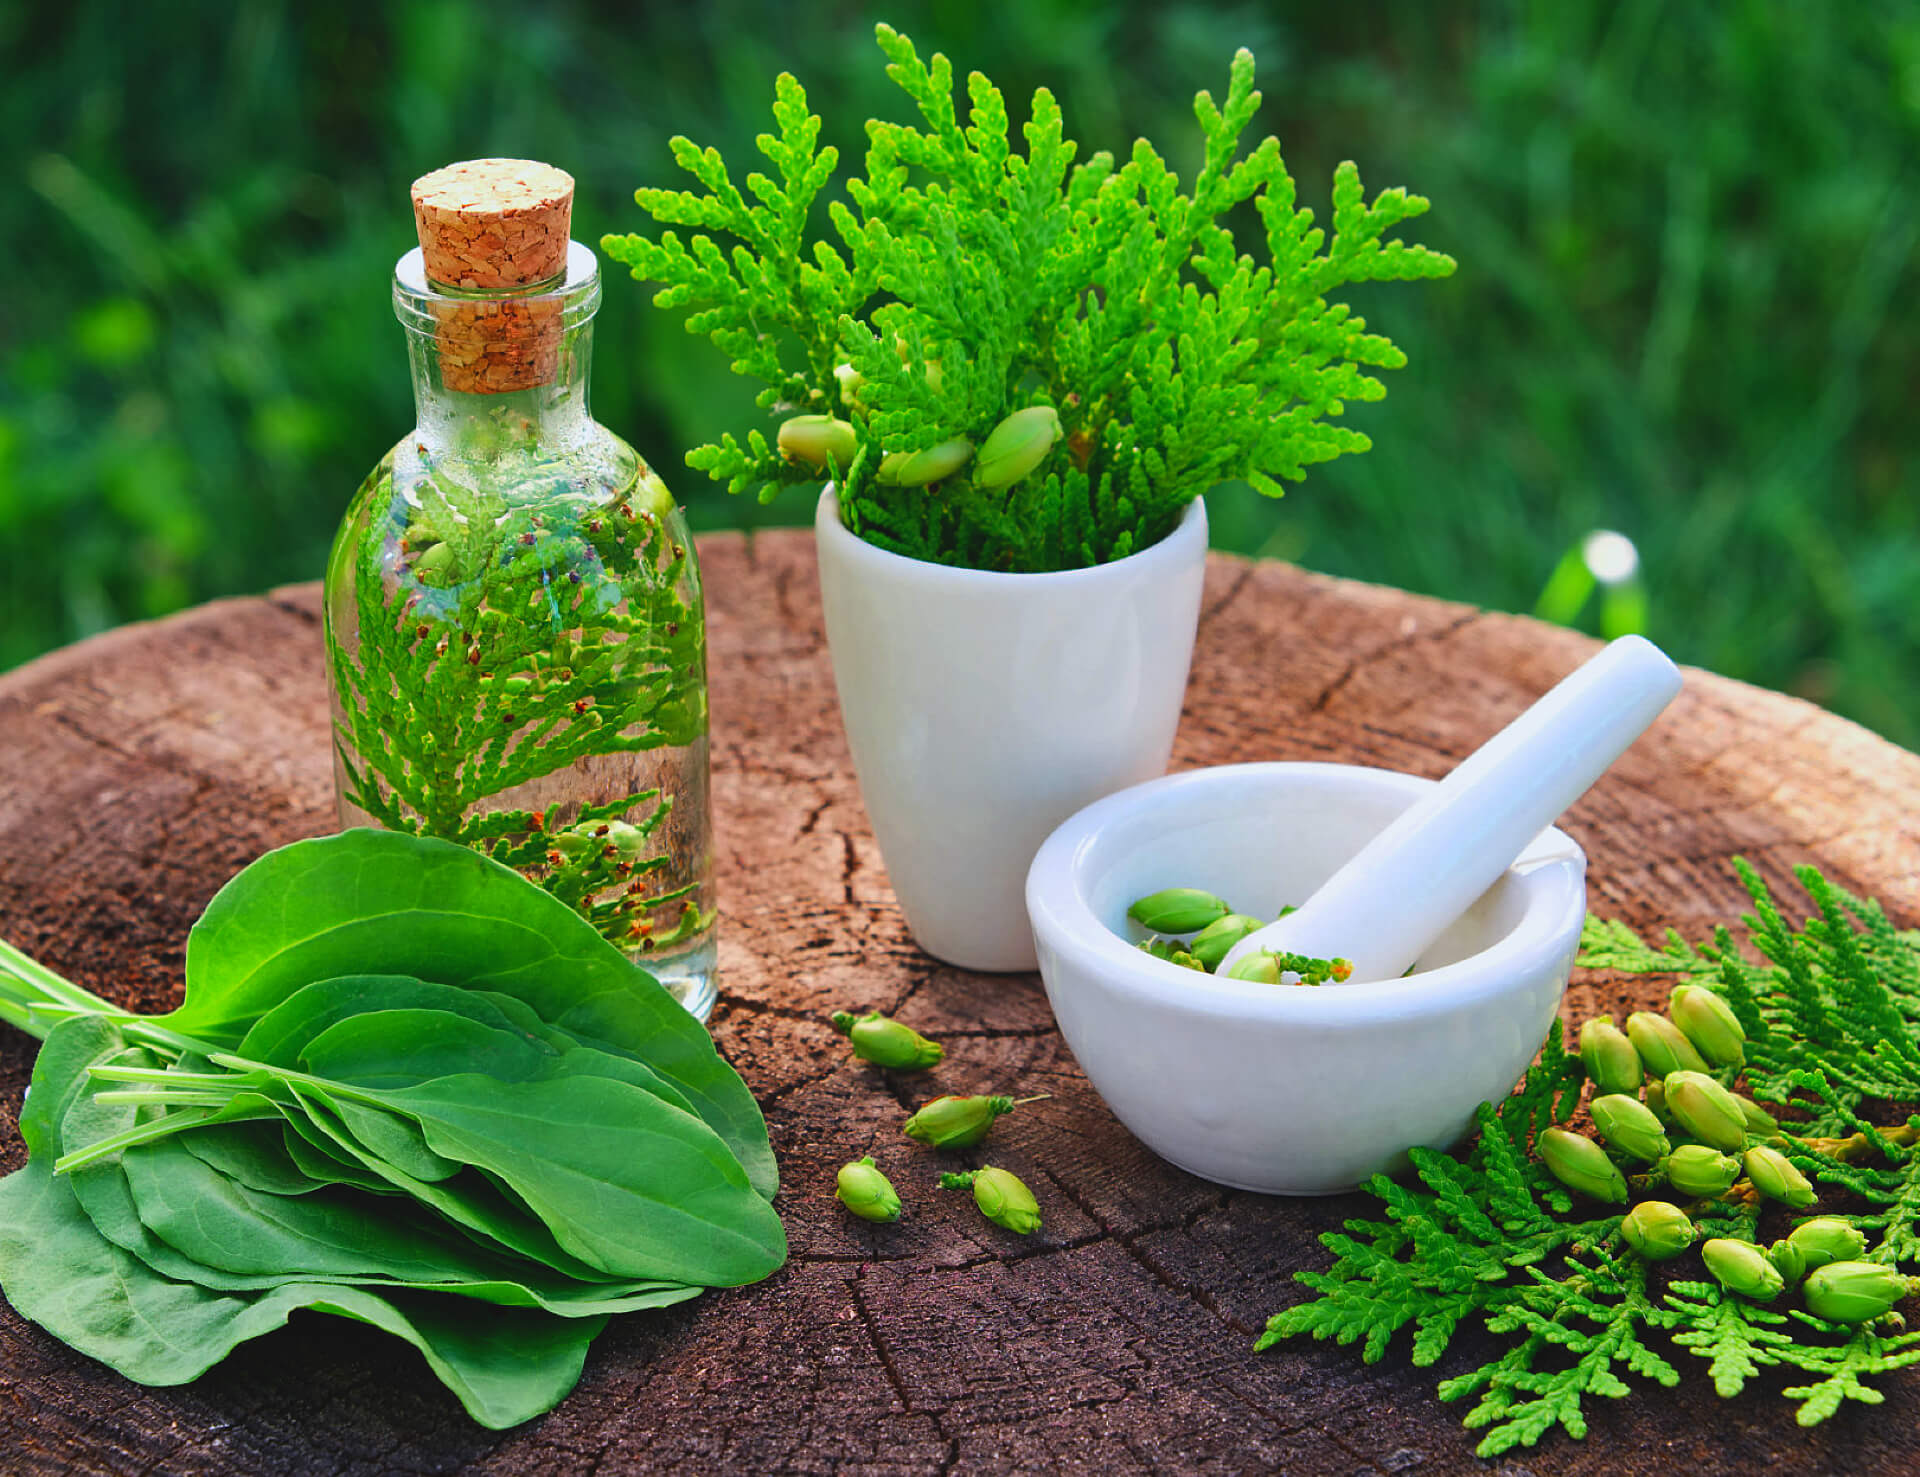 bottle of thuja infusion or oil, mortar and plantain leaves